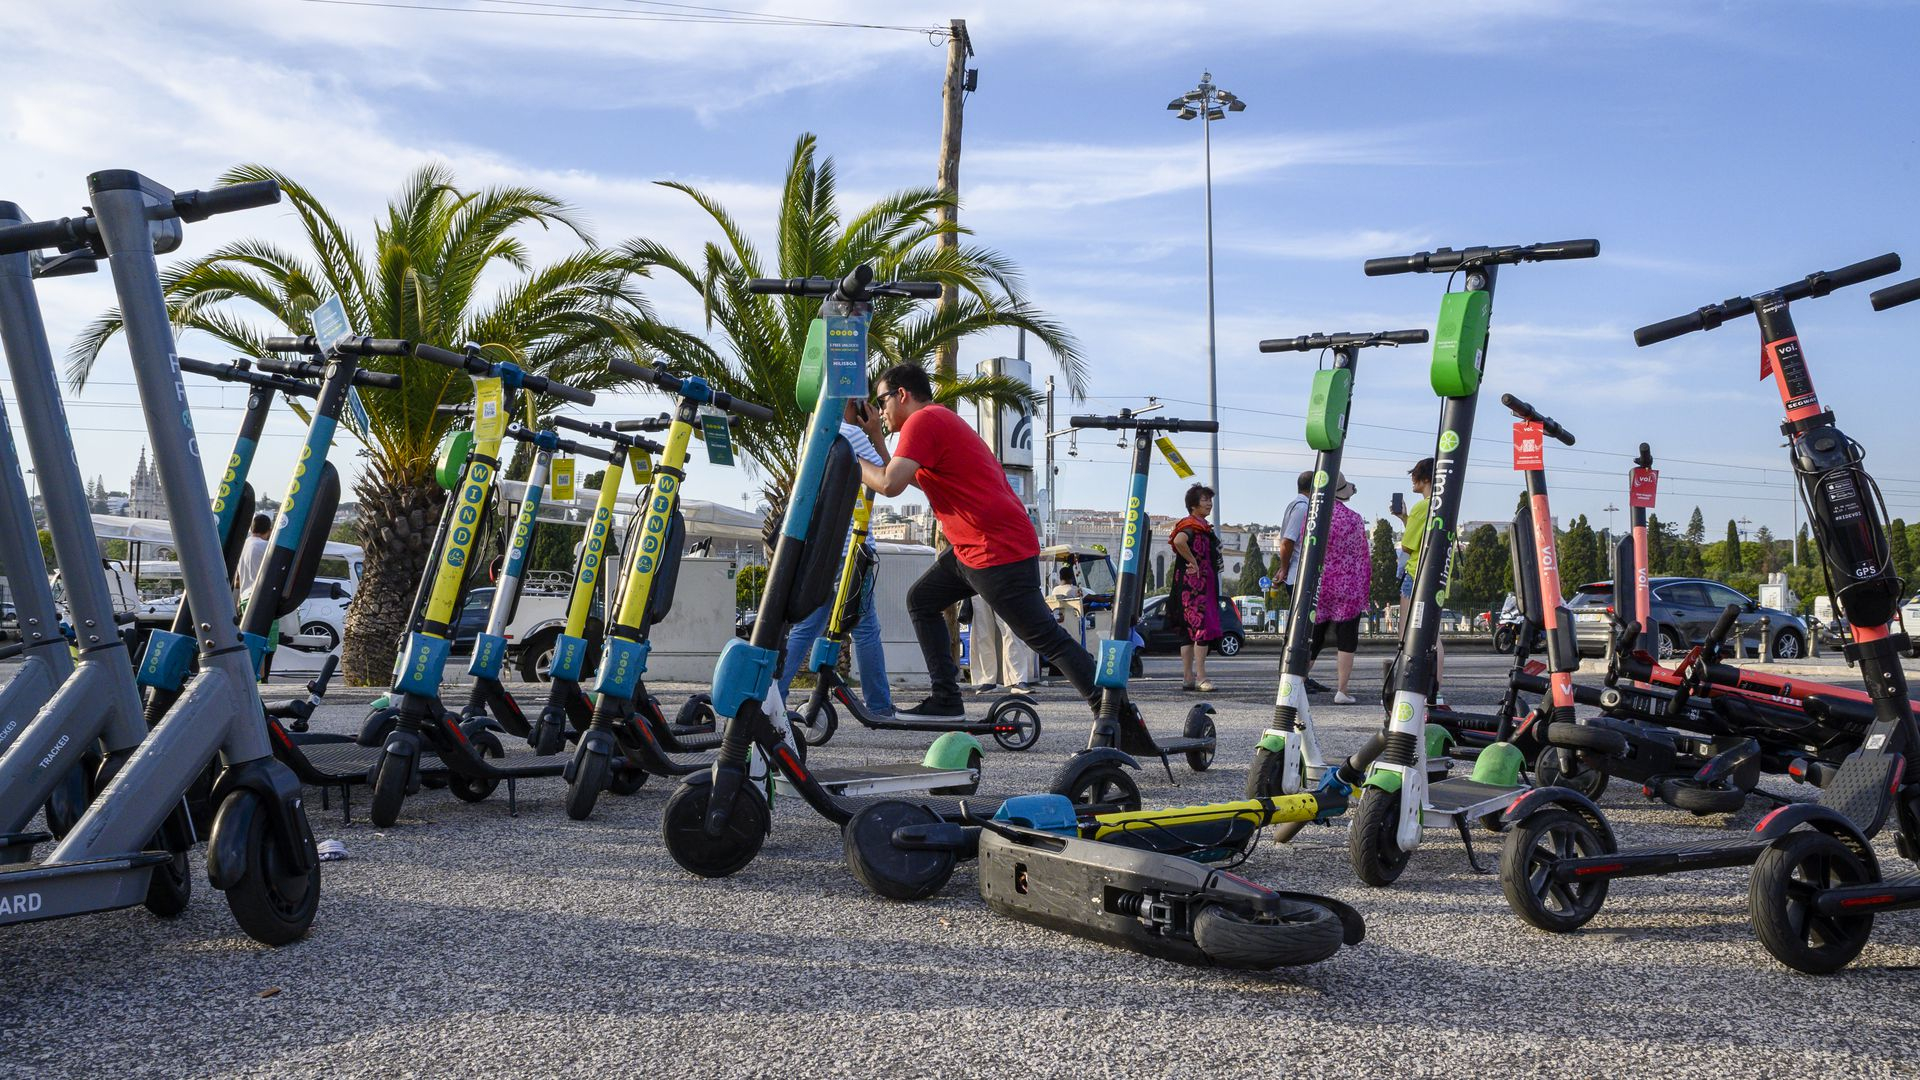 A man starts an e-scooter by a group of others left on an esplanade in Lisbon, Portugal